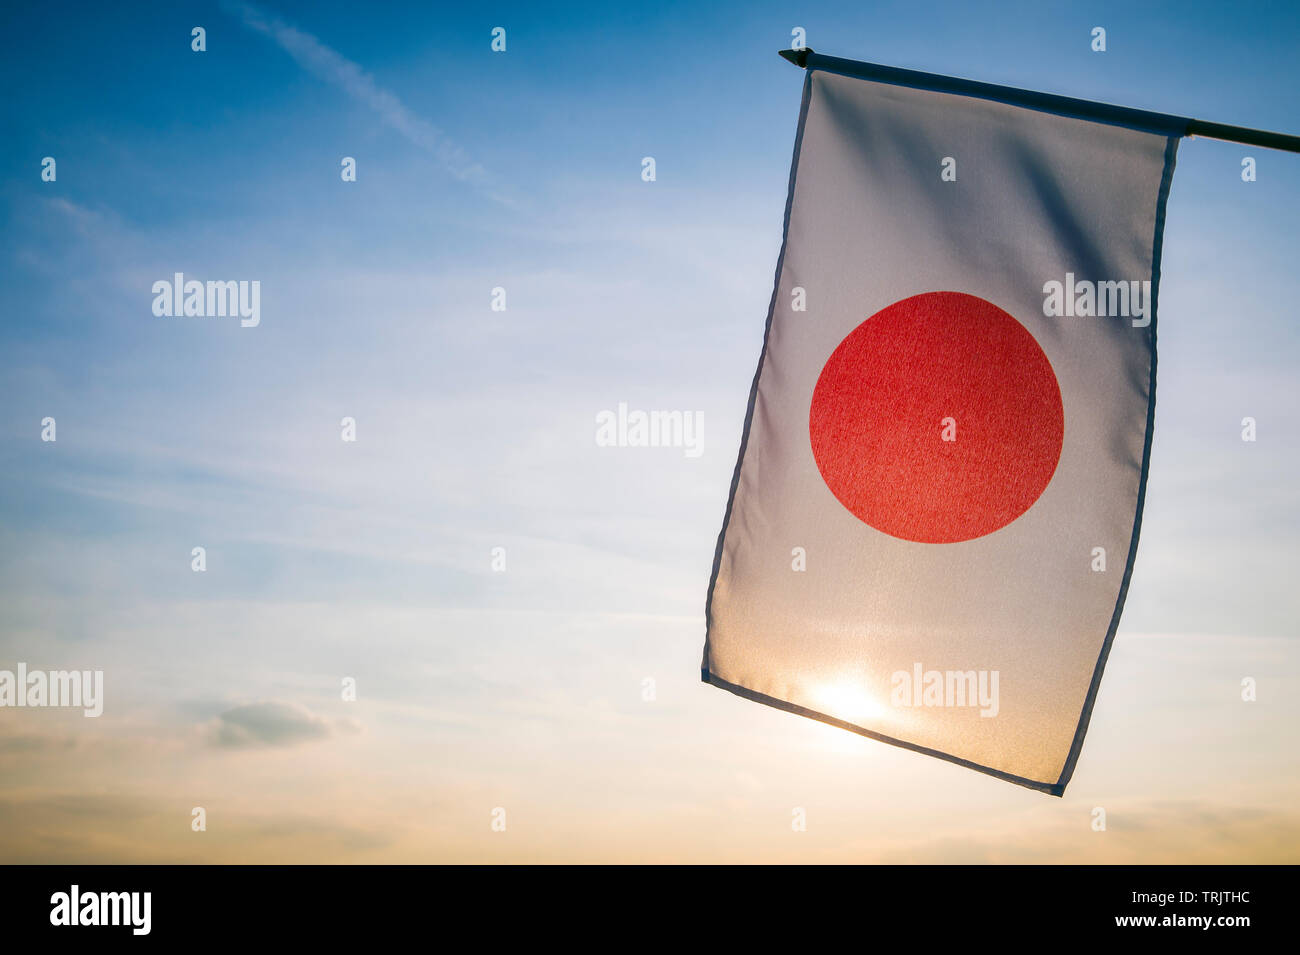 Japanese flag hanging outdoors in the still golden light of the rising sun in Tokyo, Japan - Stock Image